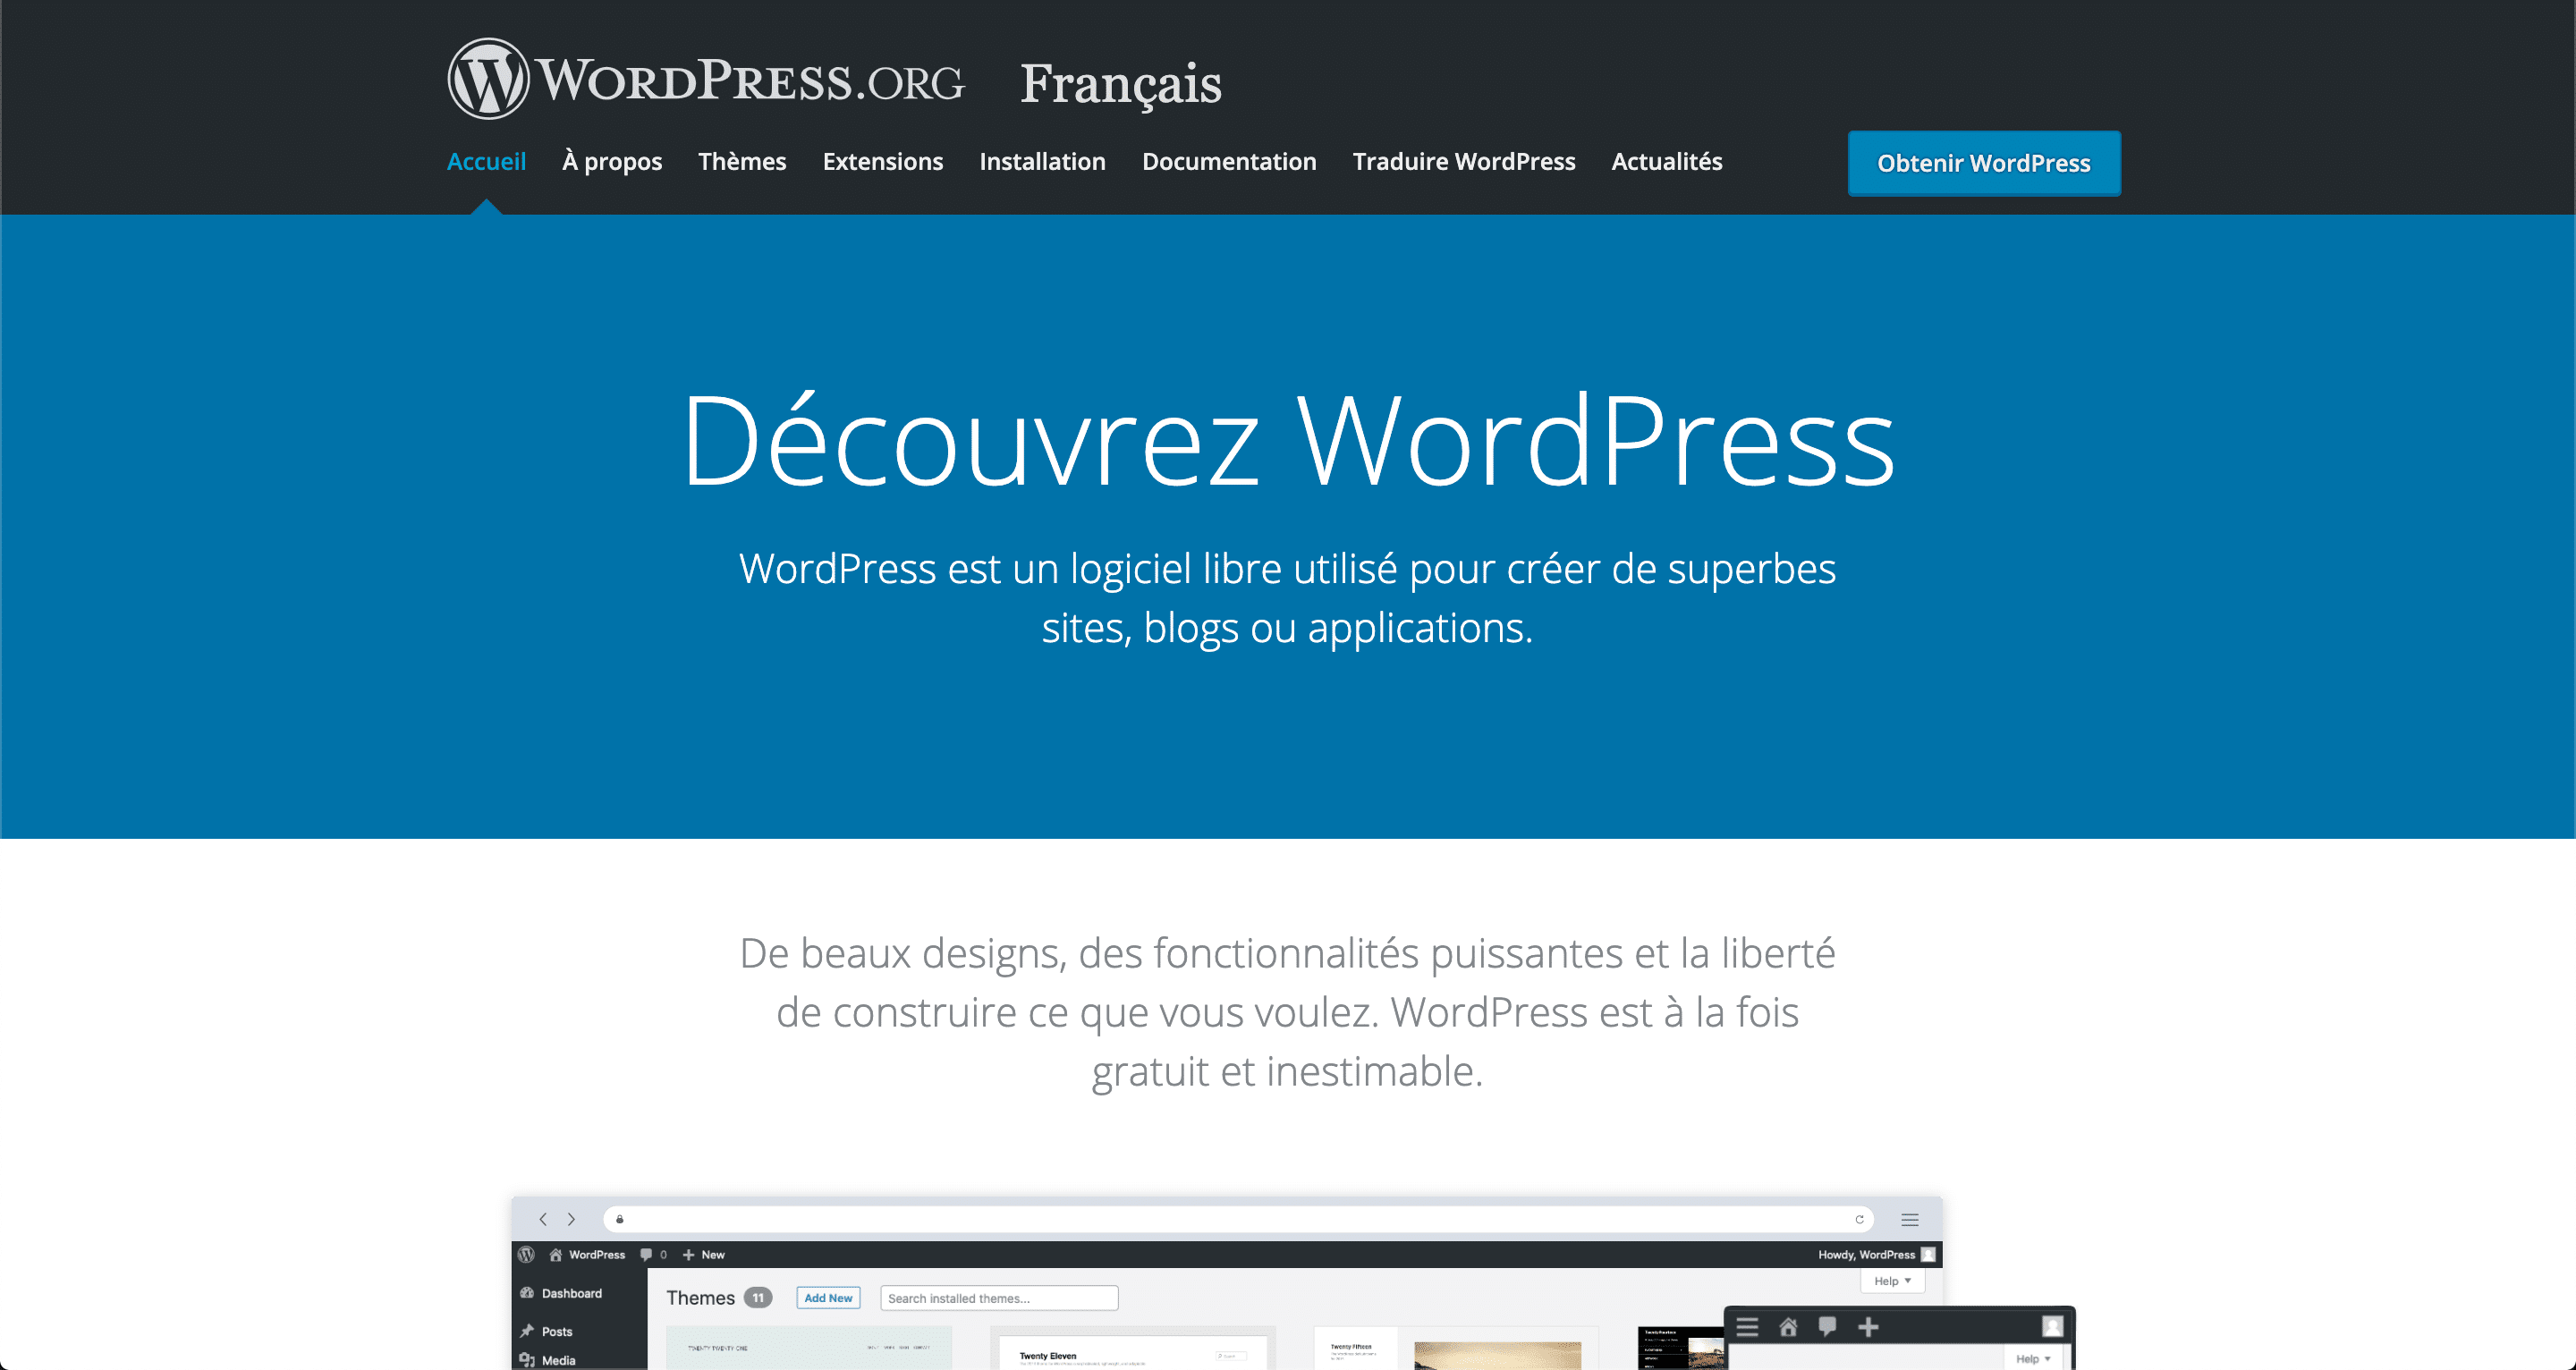 Le CMS WordPress.org ou WordPress payant